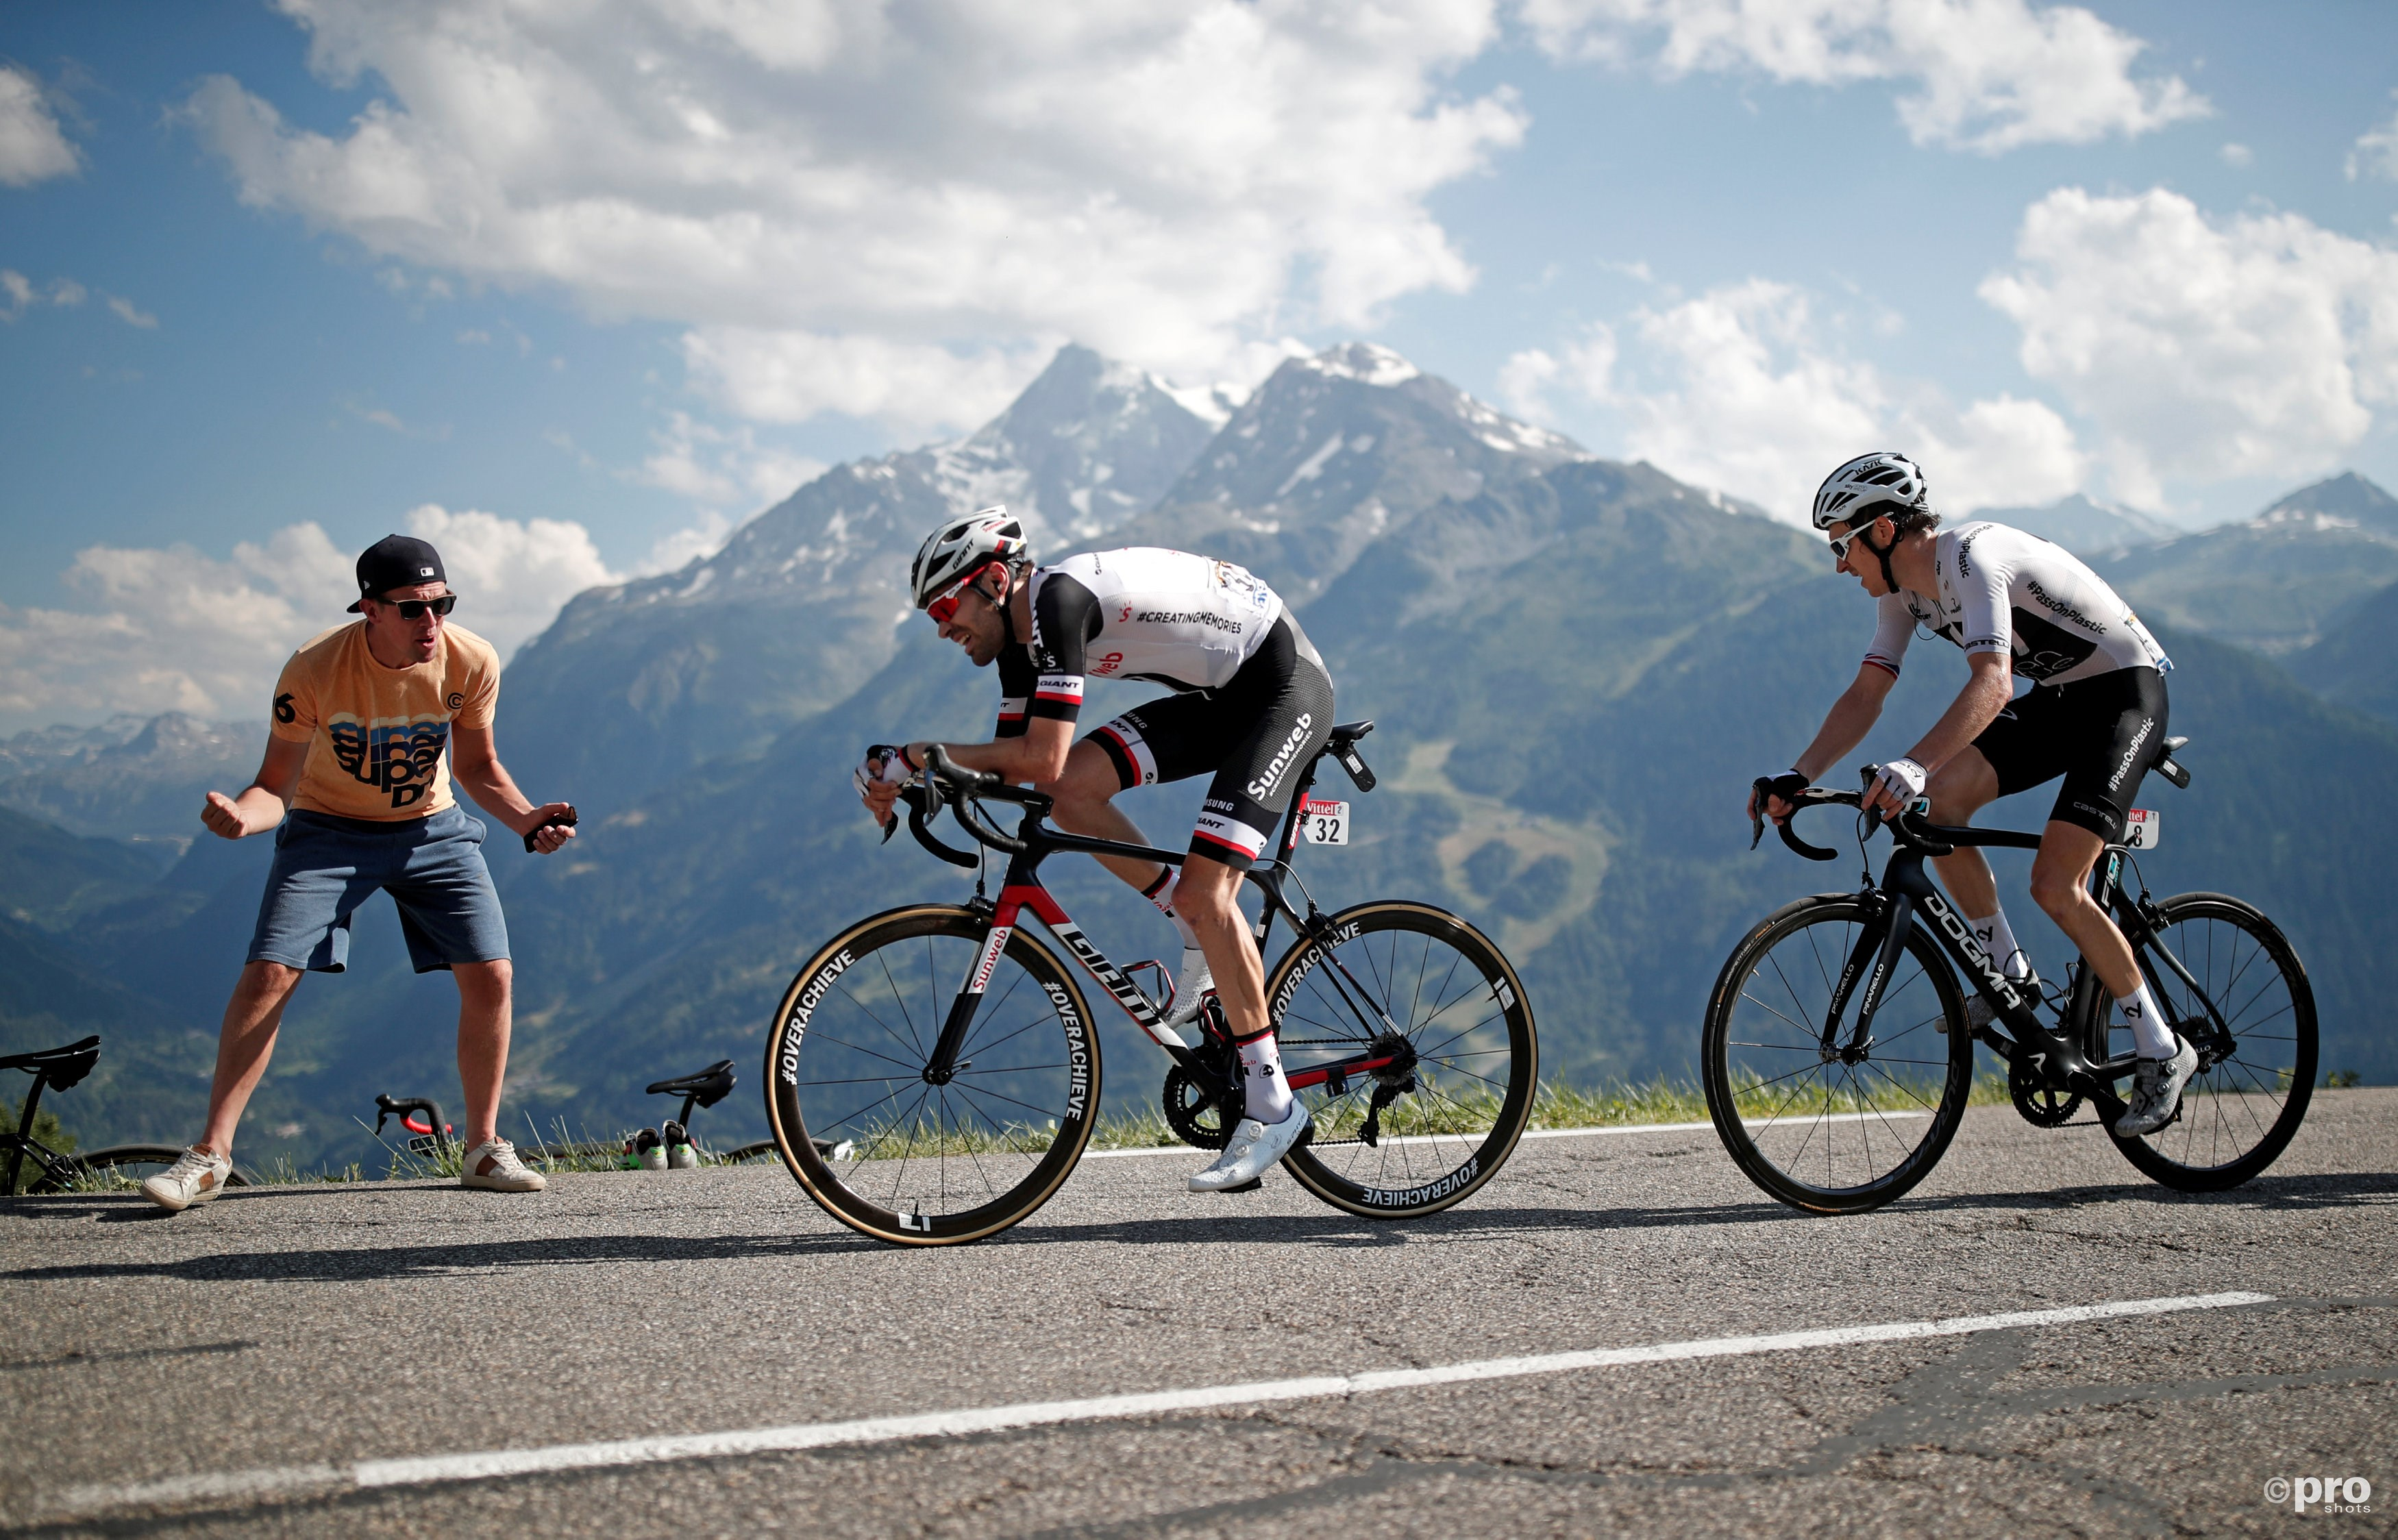 Dubbelslag Thomas, Dumoulin ijzersterk (Pro Shots / Action Images)